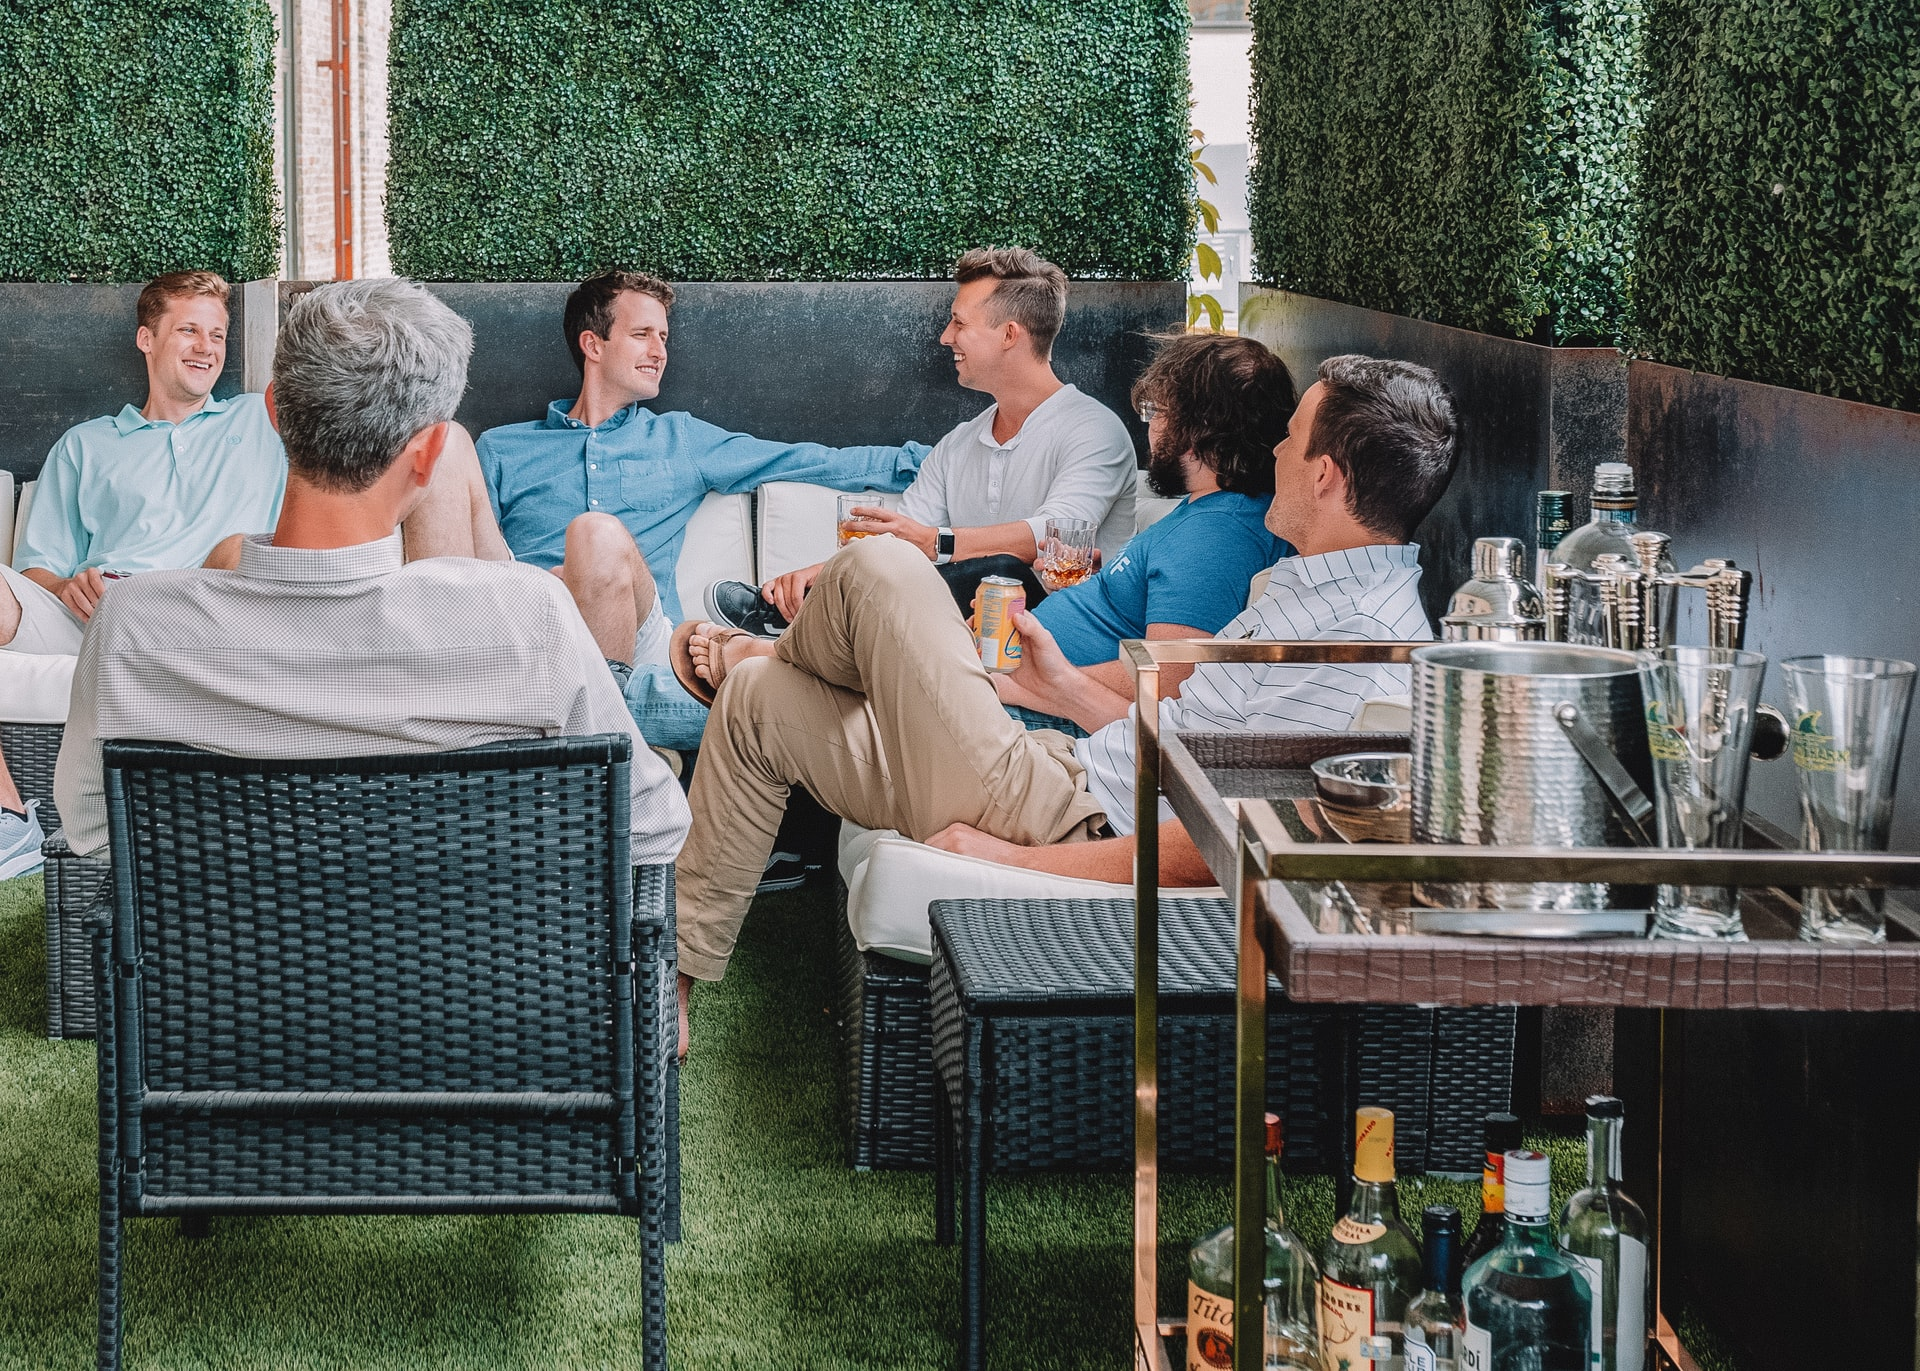 a group of men sitting around and talking